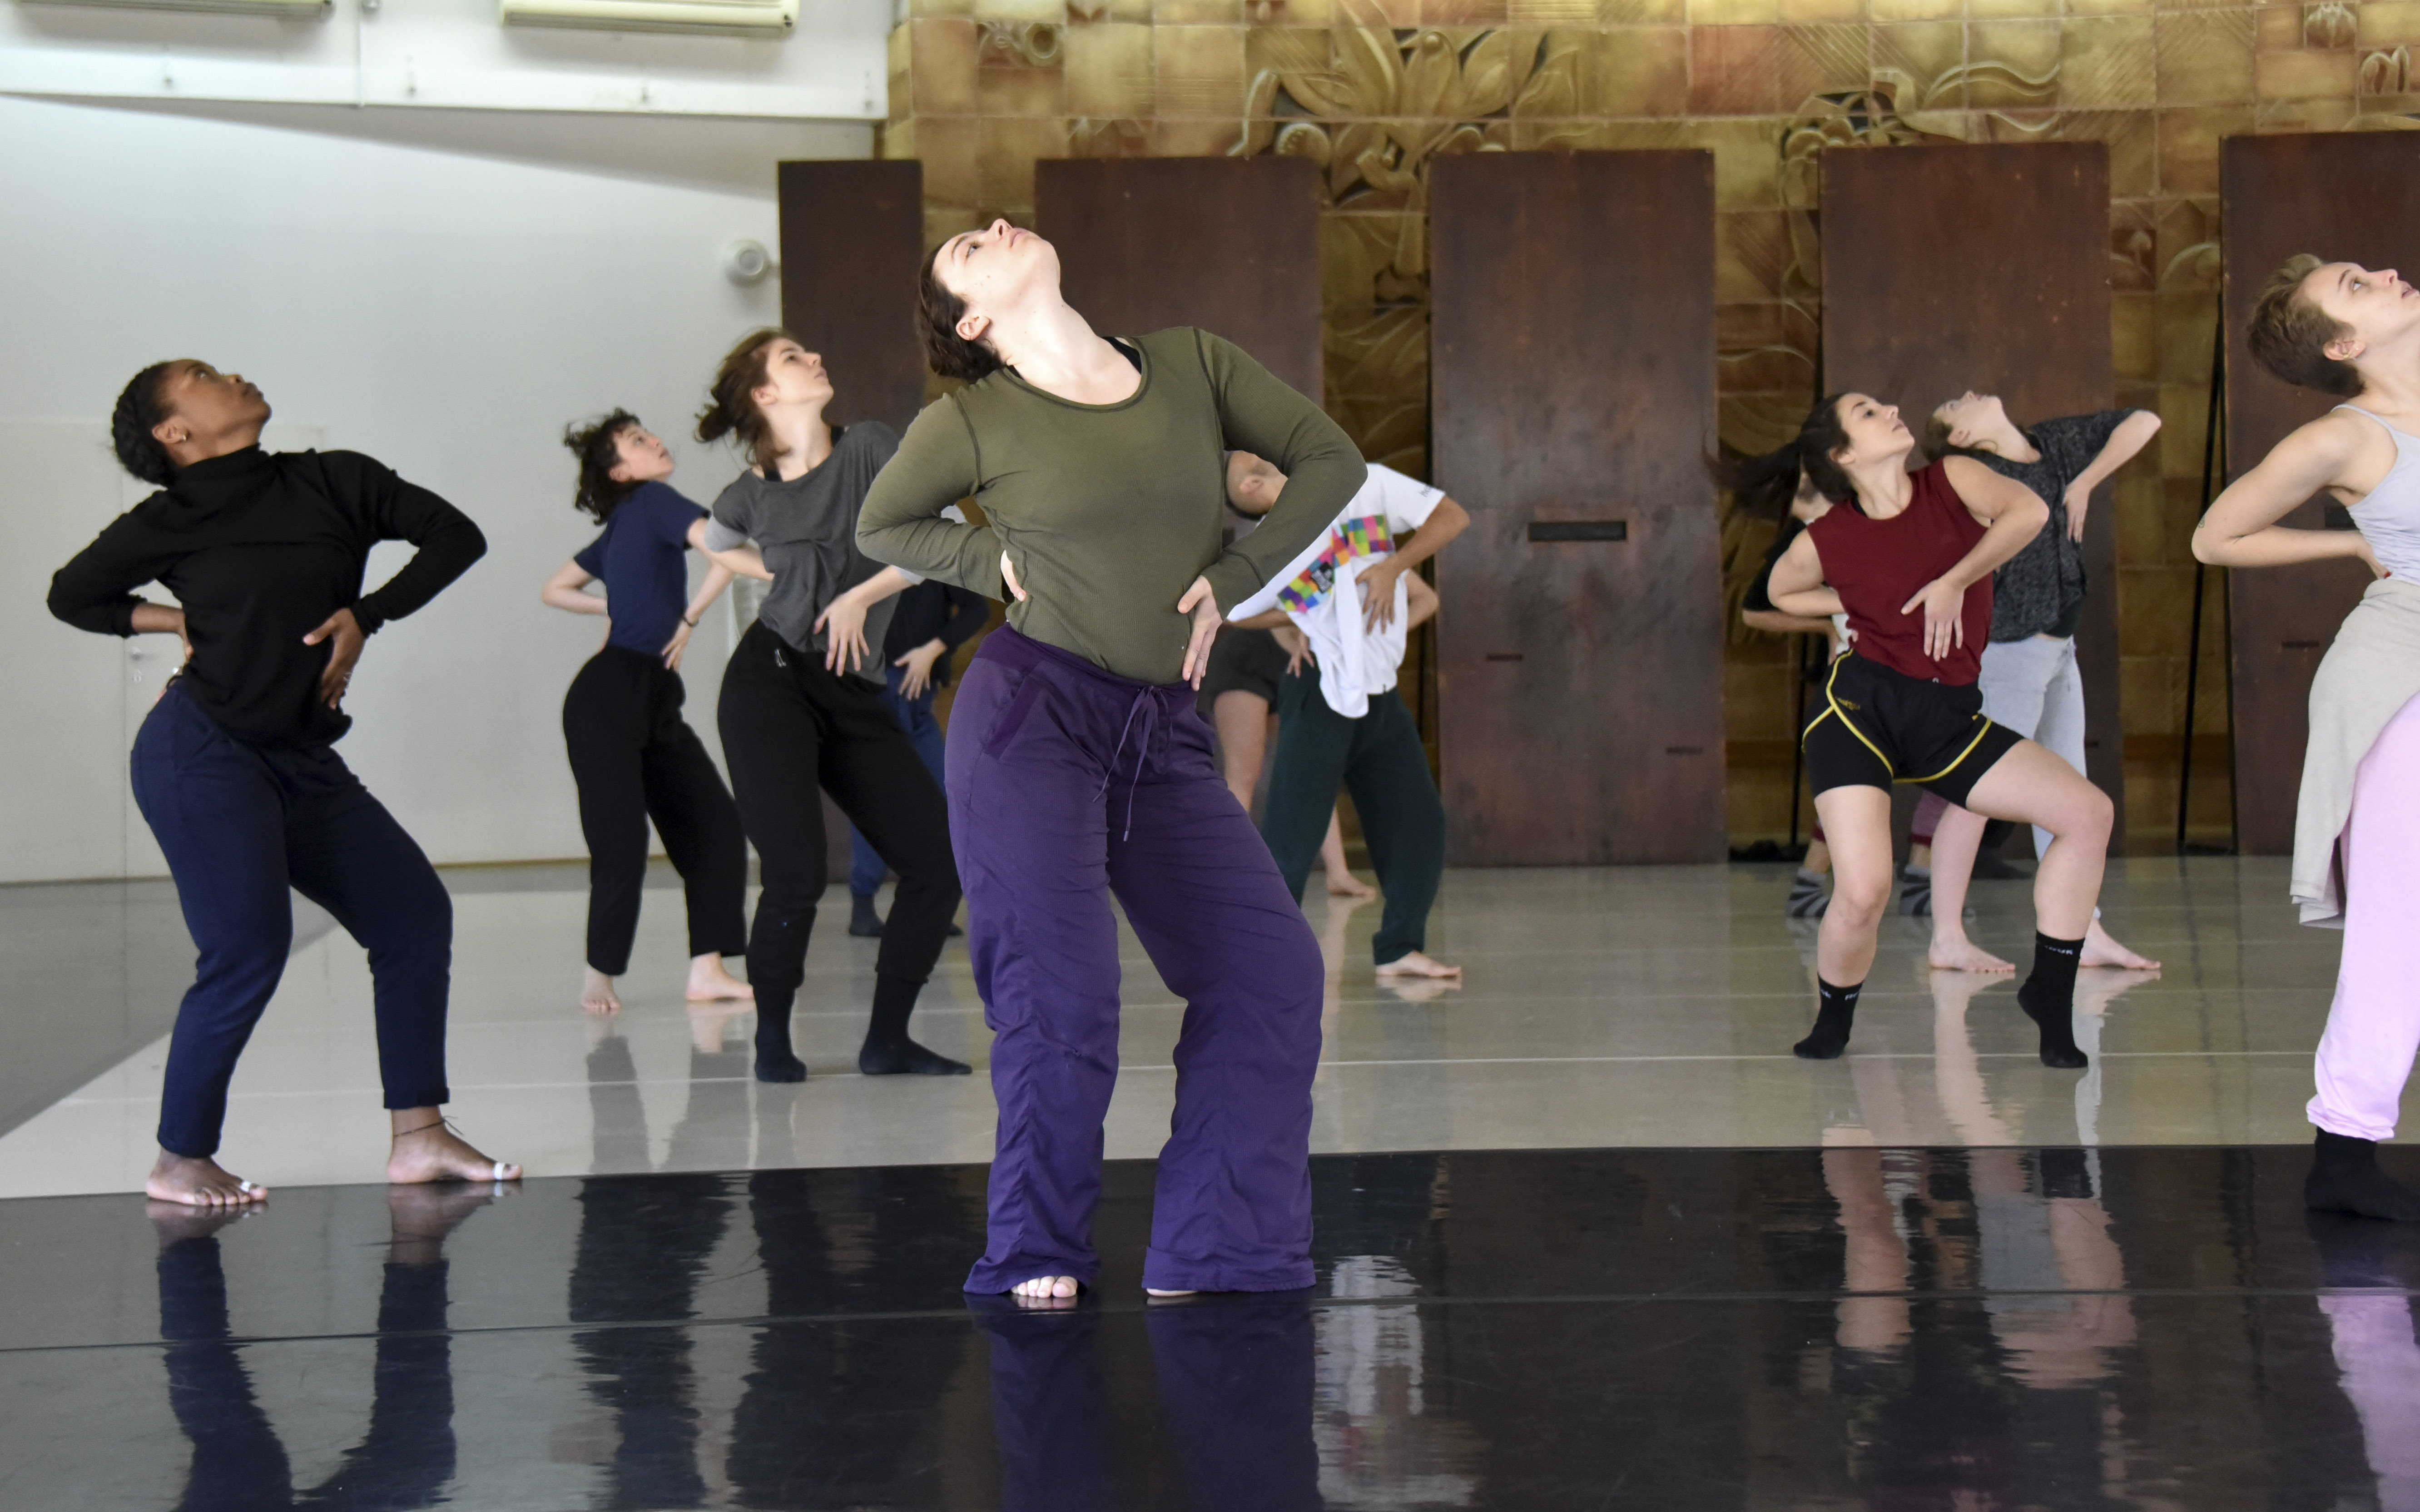 charlson and a room of other dancers strike the same defiant pose